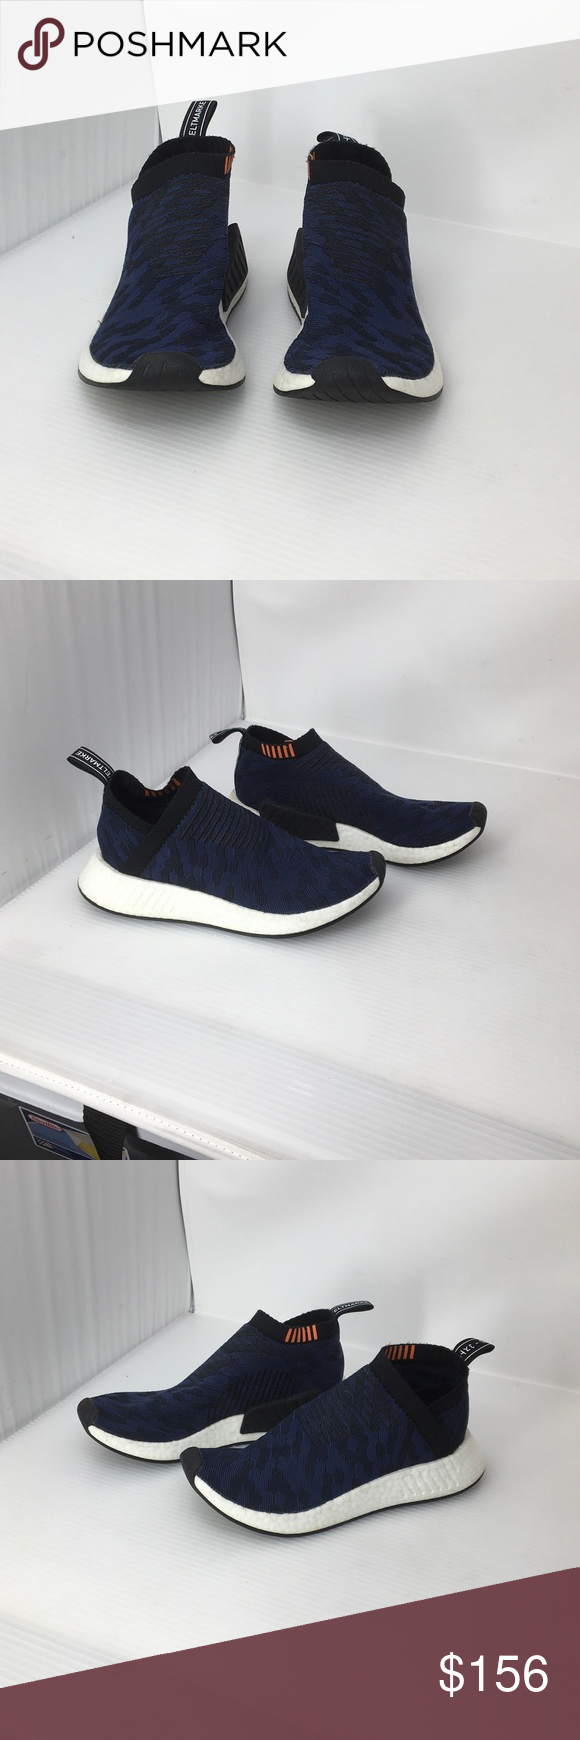 f6ee1ac153c98 Adidas Women's La Marque Aux 3 Bandes US 8.5 The NMD CS2 PK features a  lightweight